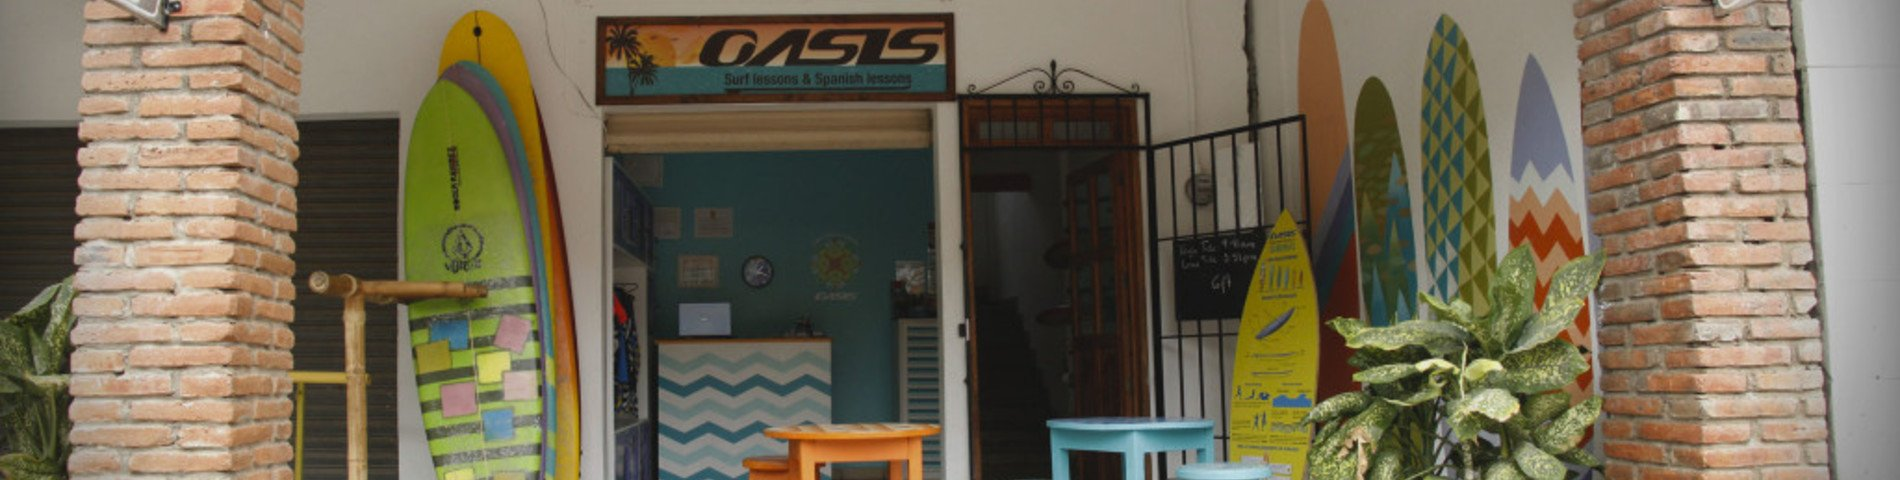 Oasis Language School รูปภาพ 1